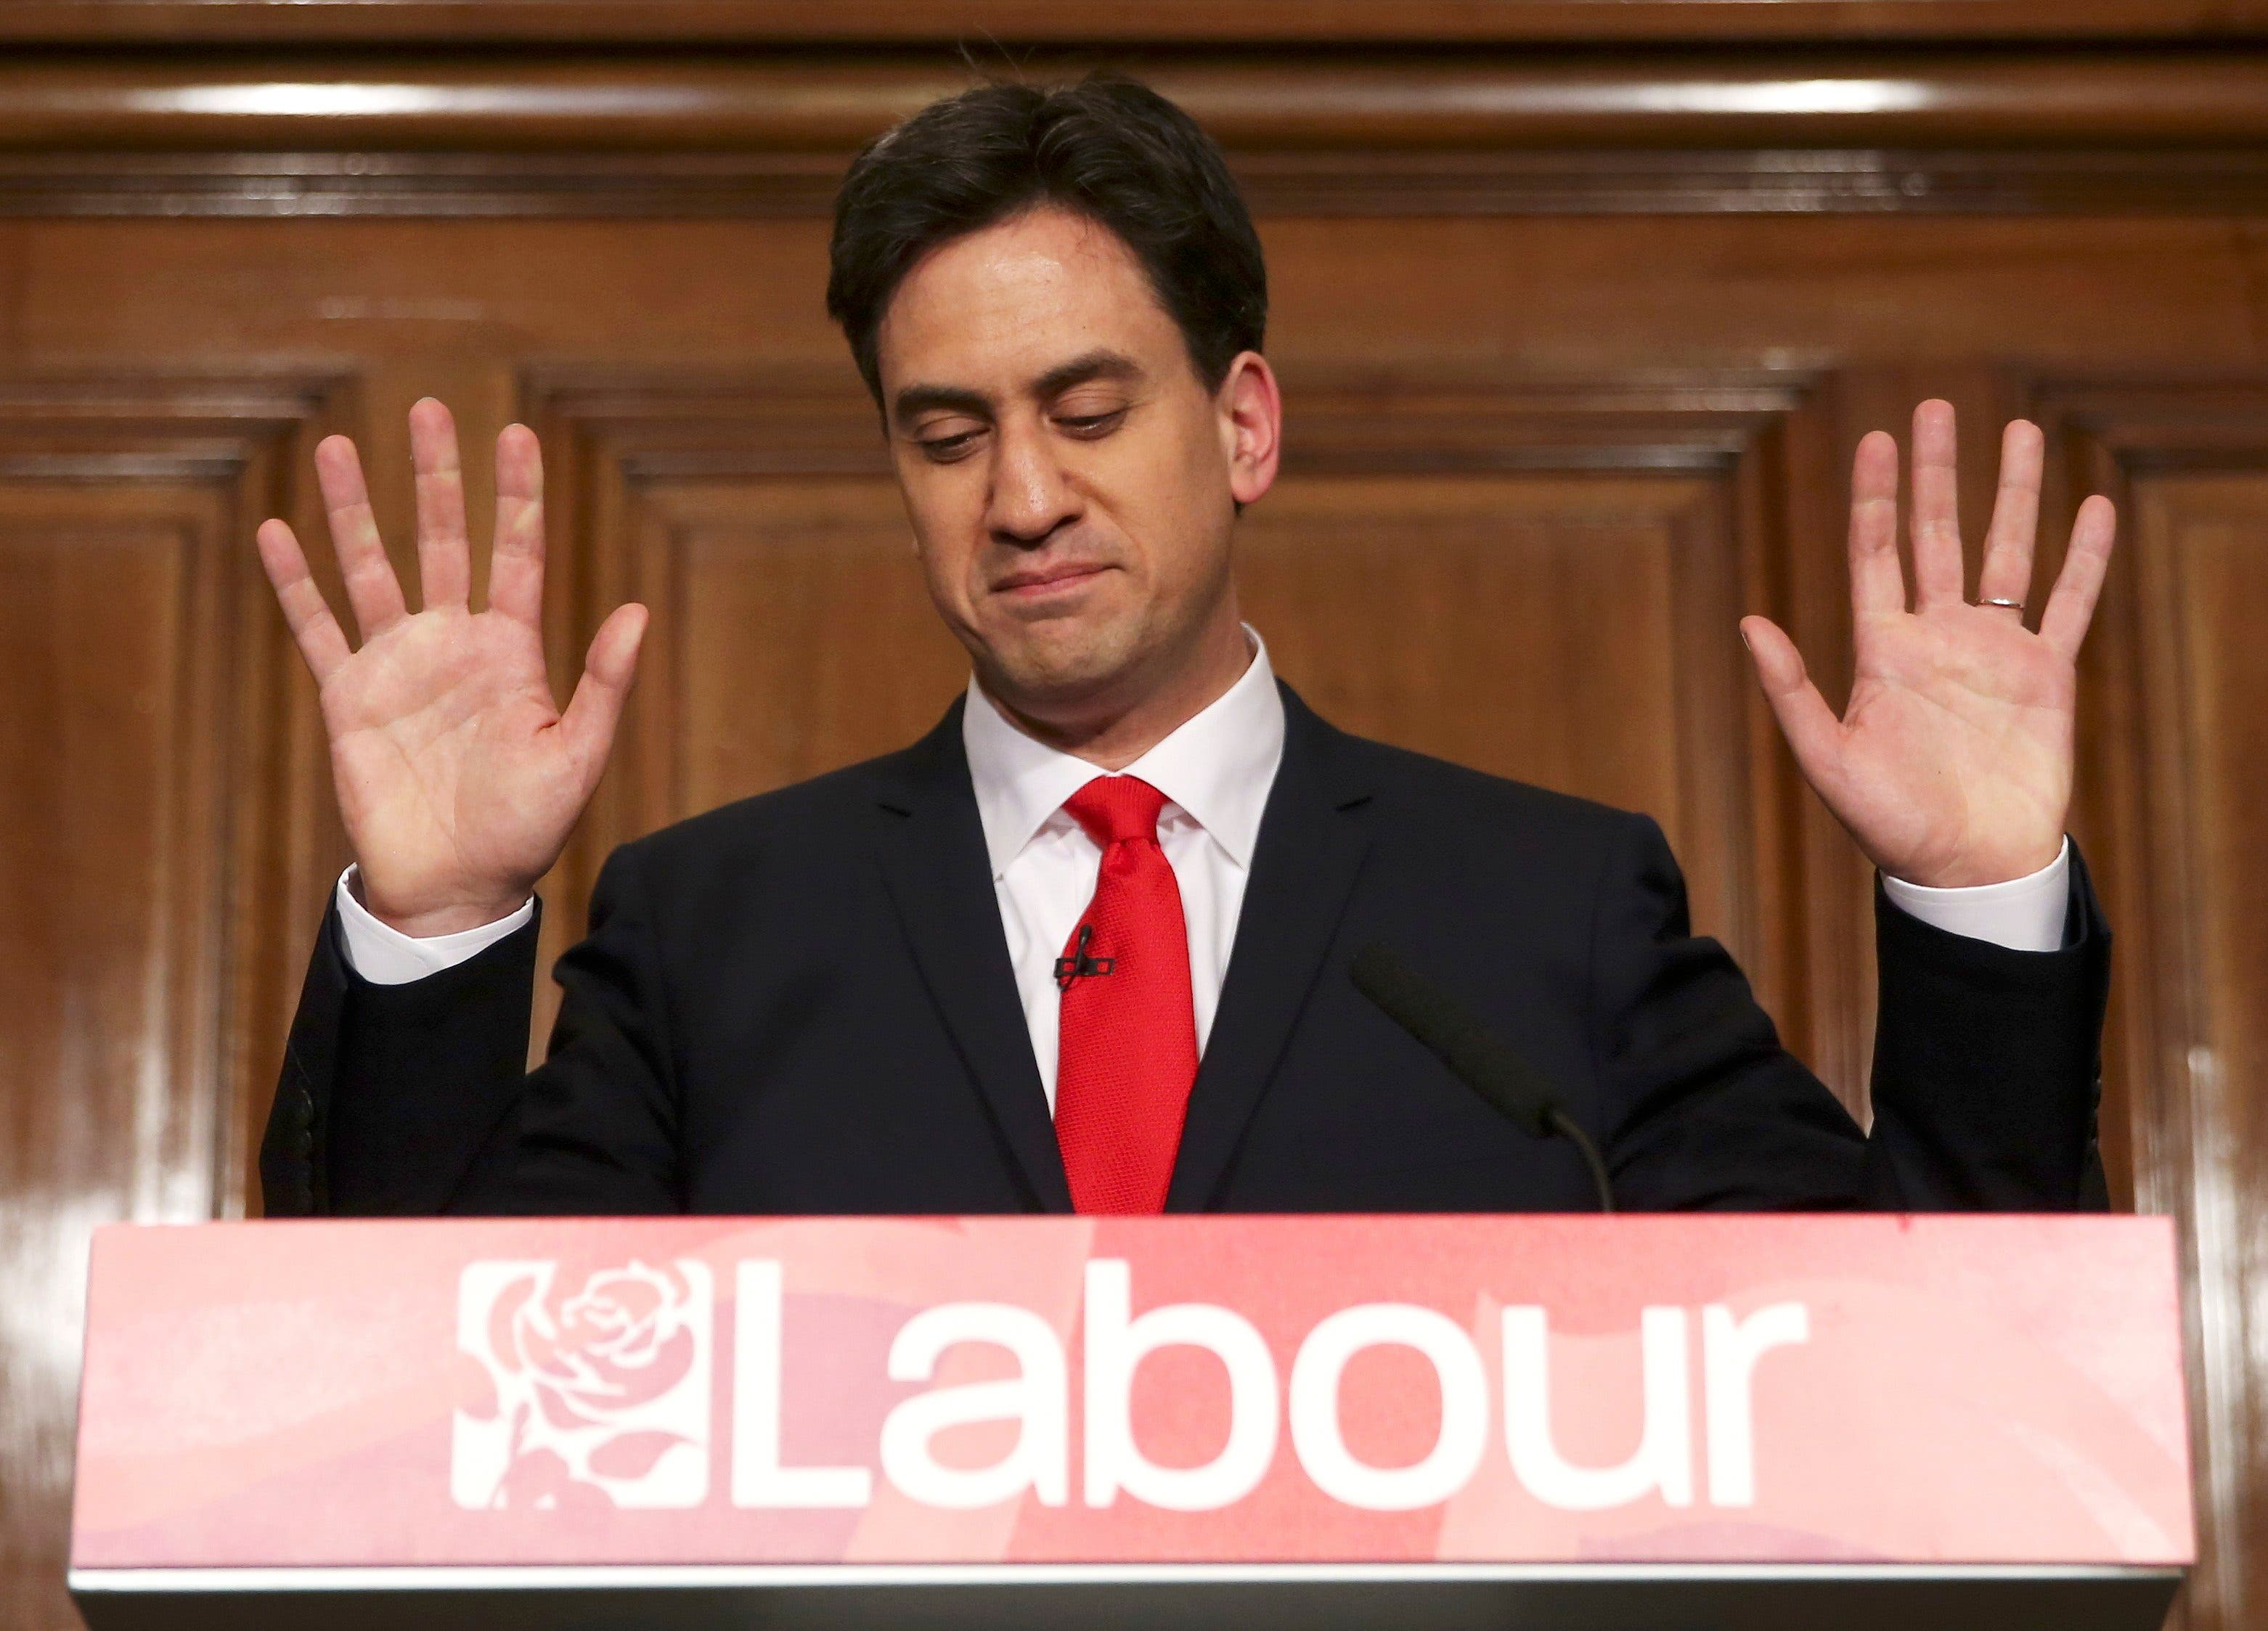 Ed Miliband MP resigns as leader of the Labour Party (Reuters)